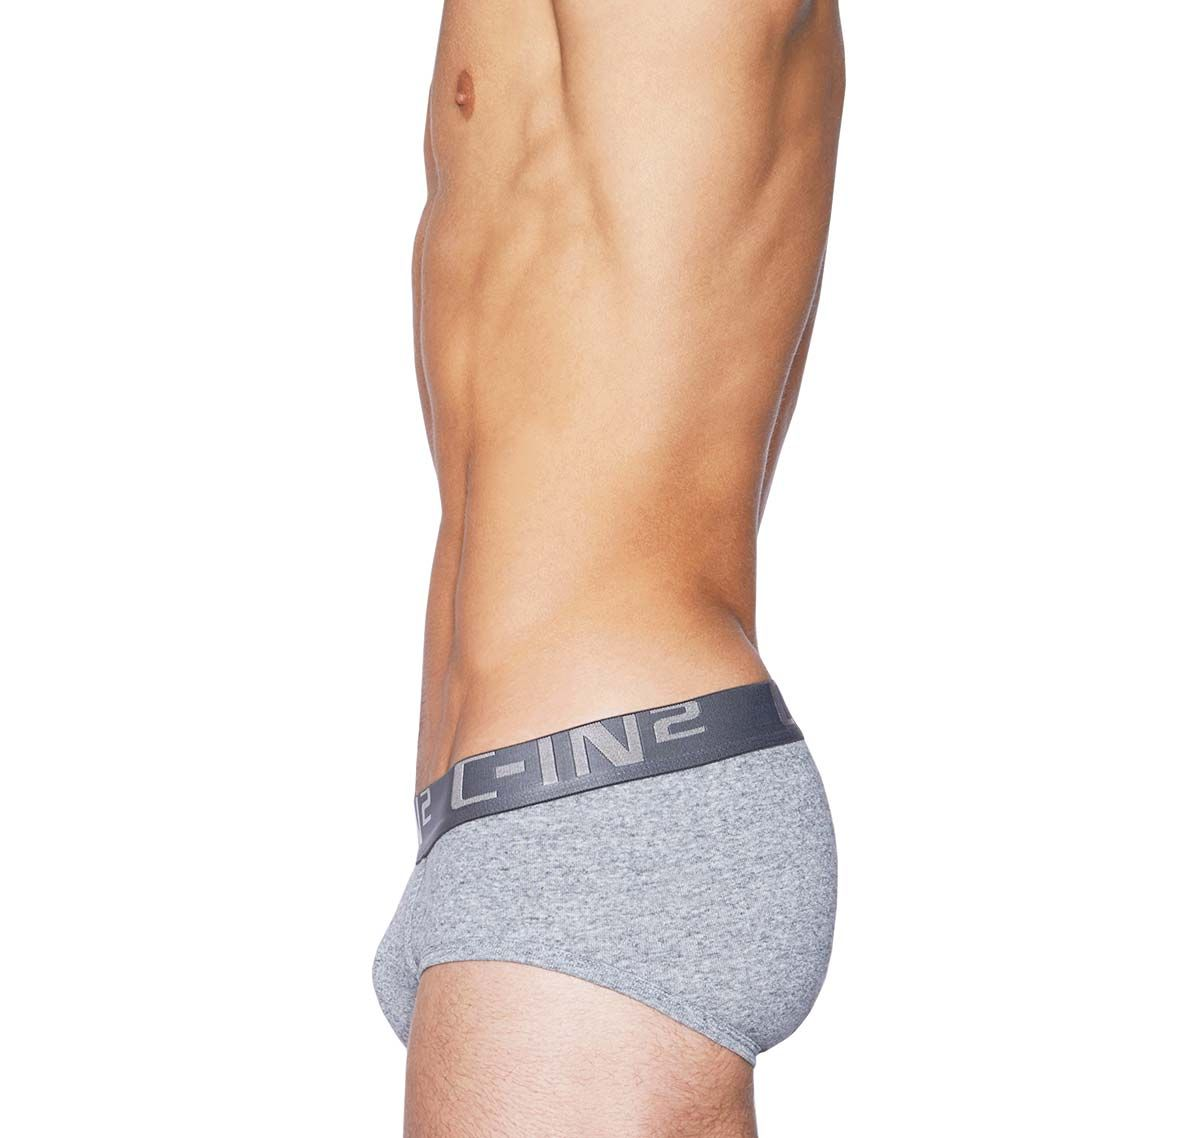 C-IN2 Slip CORE MID RISE BRIEF, gris